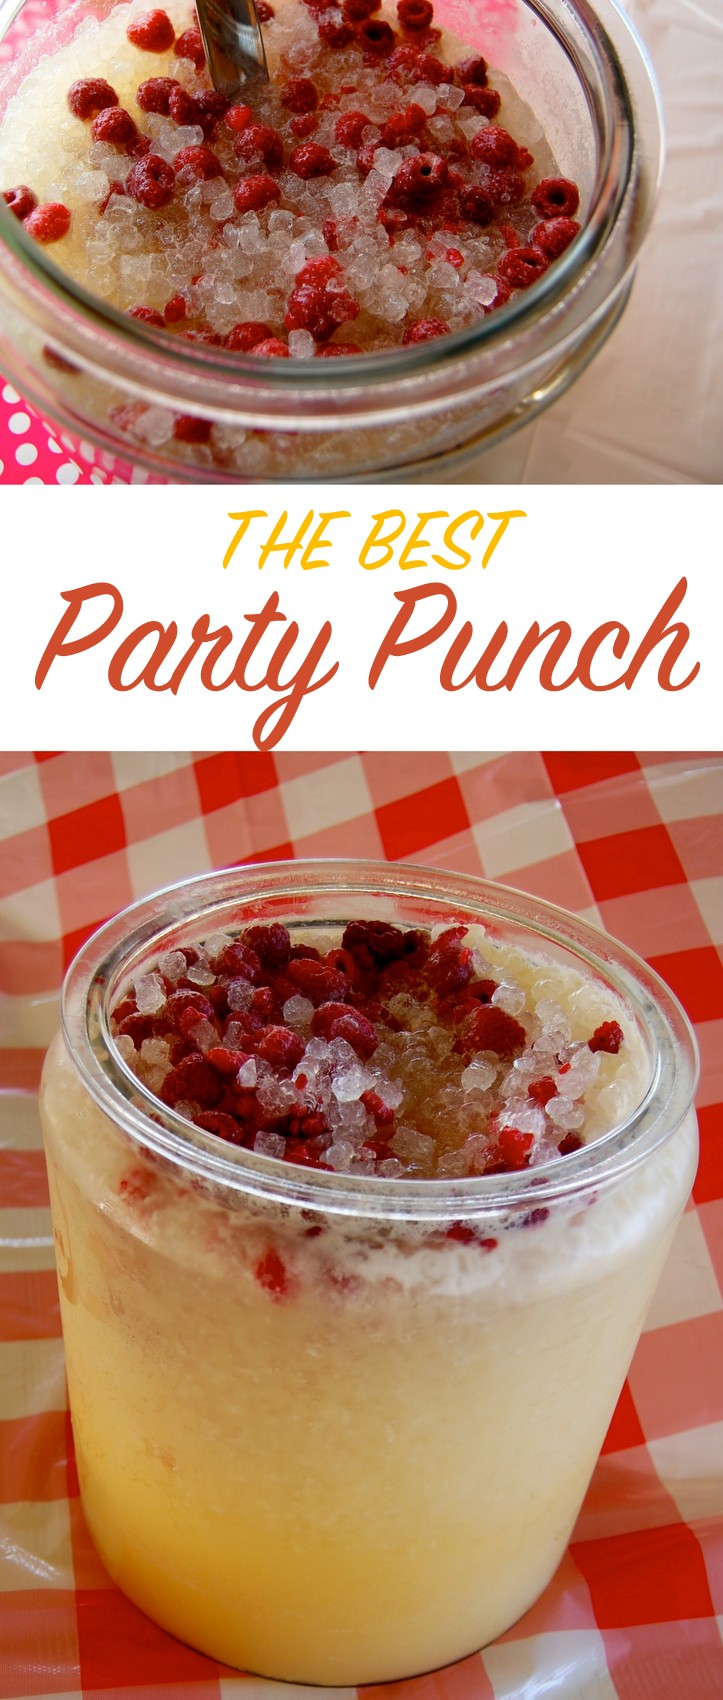 The Best Party Punch! This punch is a great go to punch for your gatherings, parties, showers...you name it! #punch #partypunch #punchrecipes #drinks #drinkideas #drinkrecipes